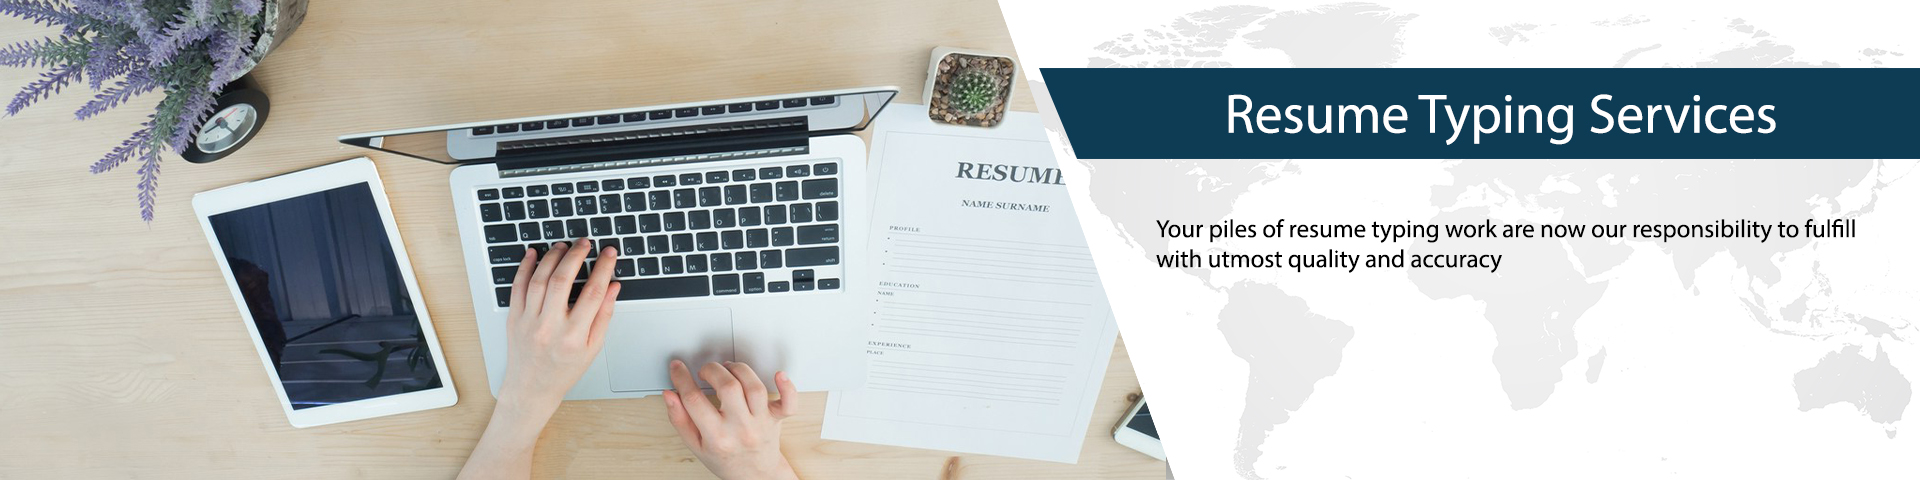 Resume Typing Services